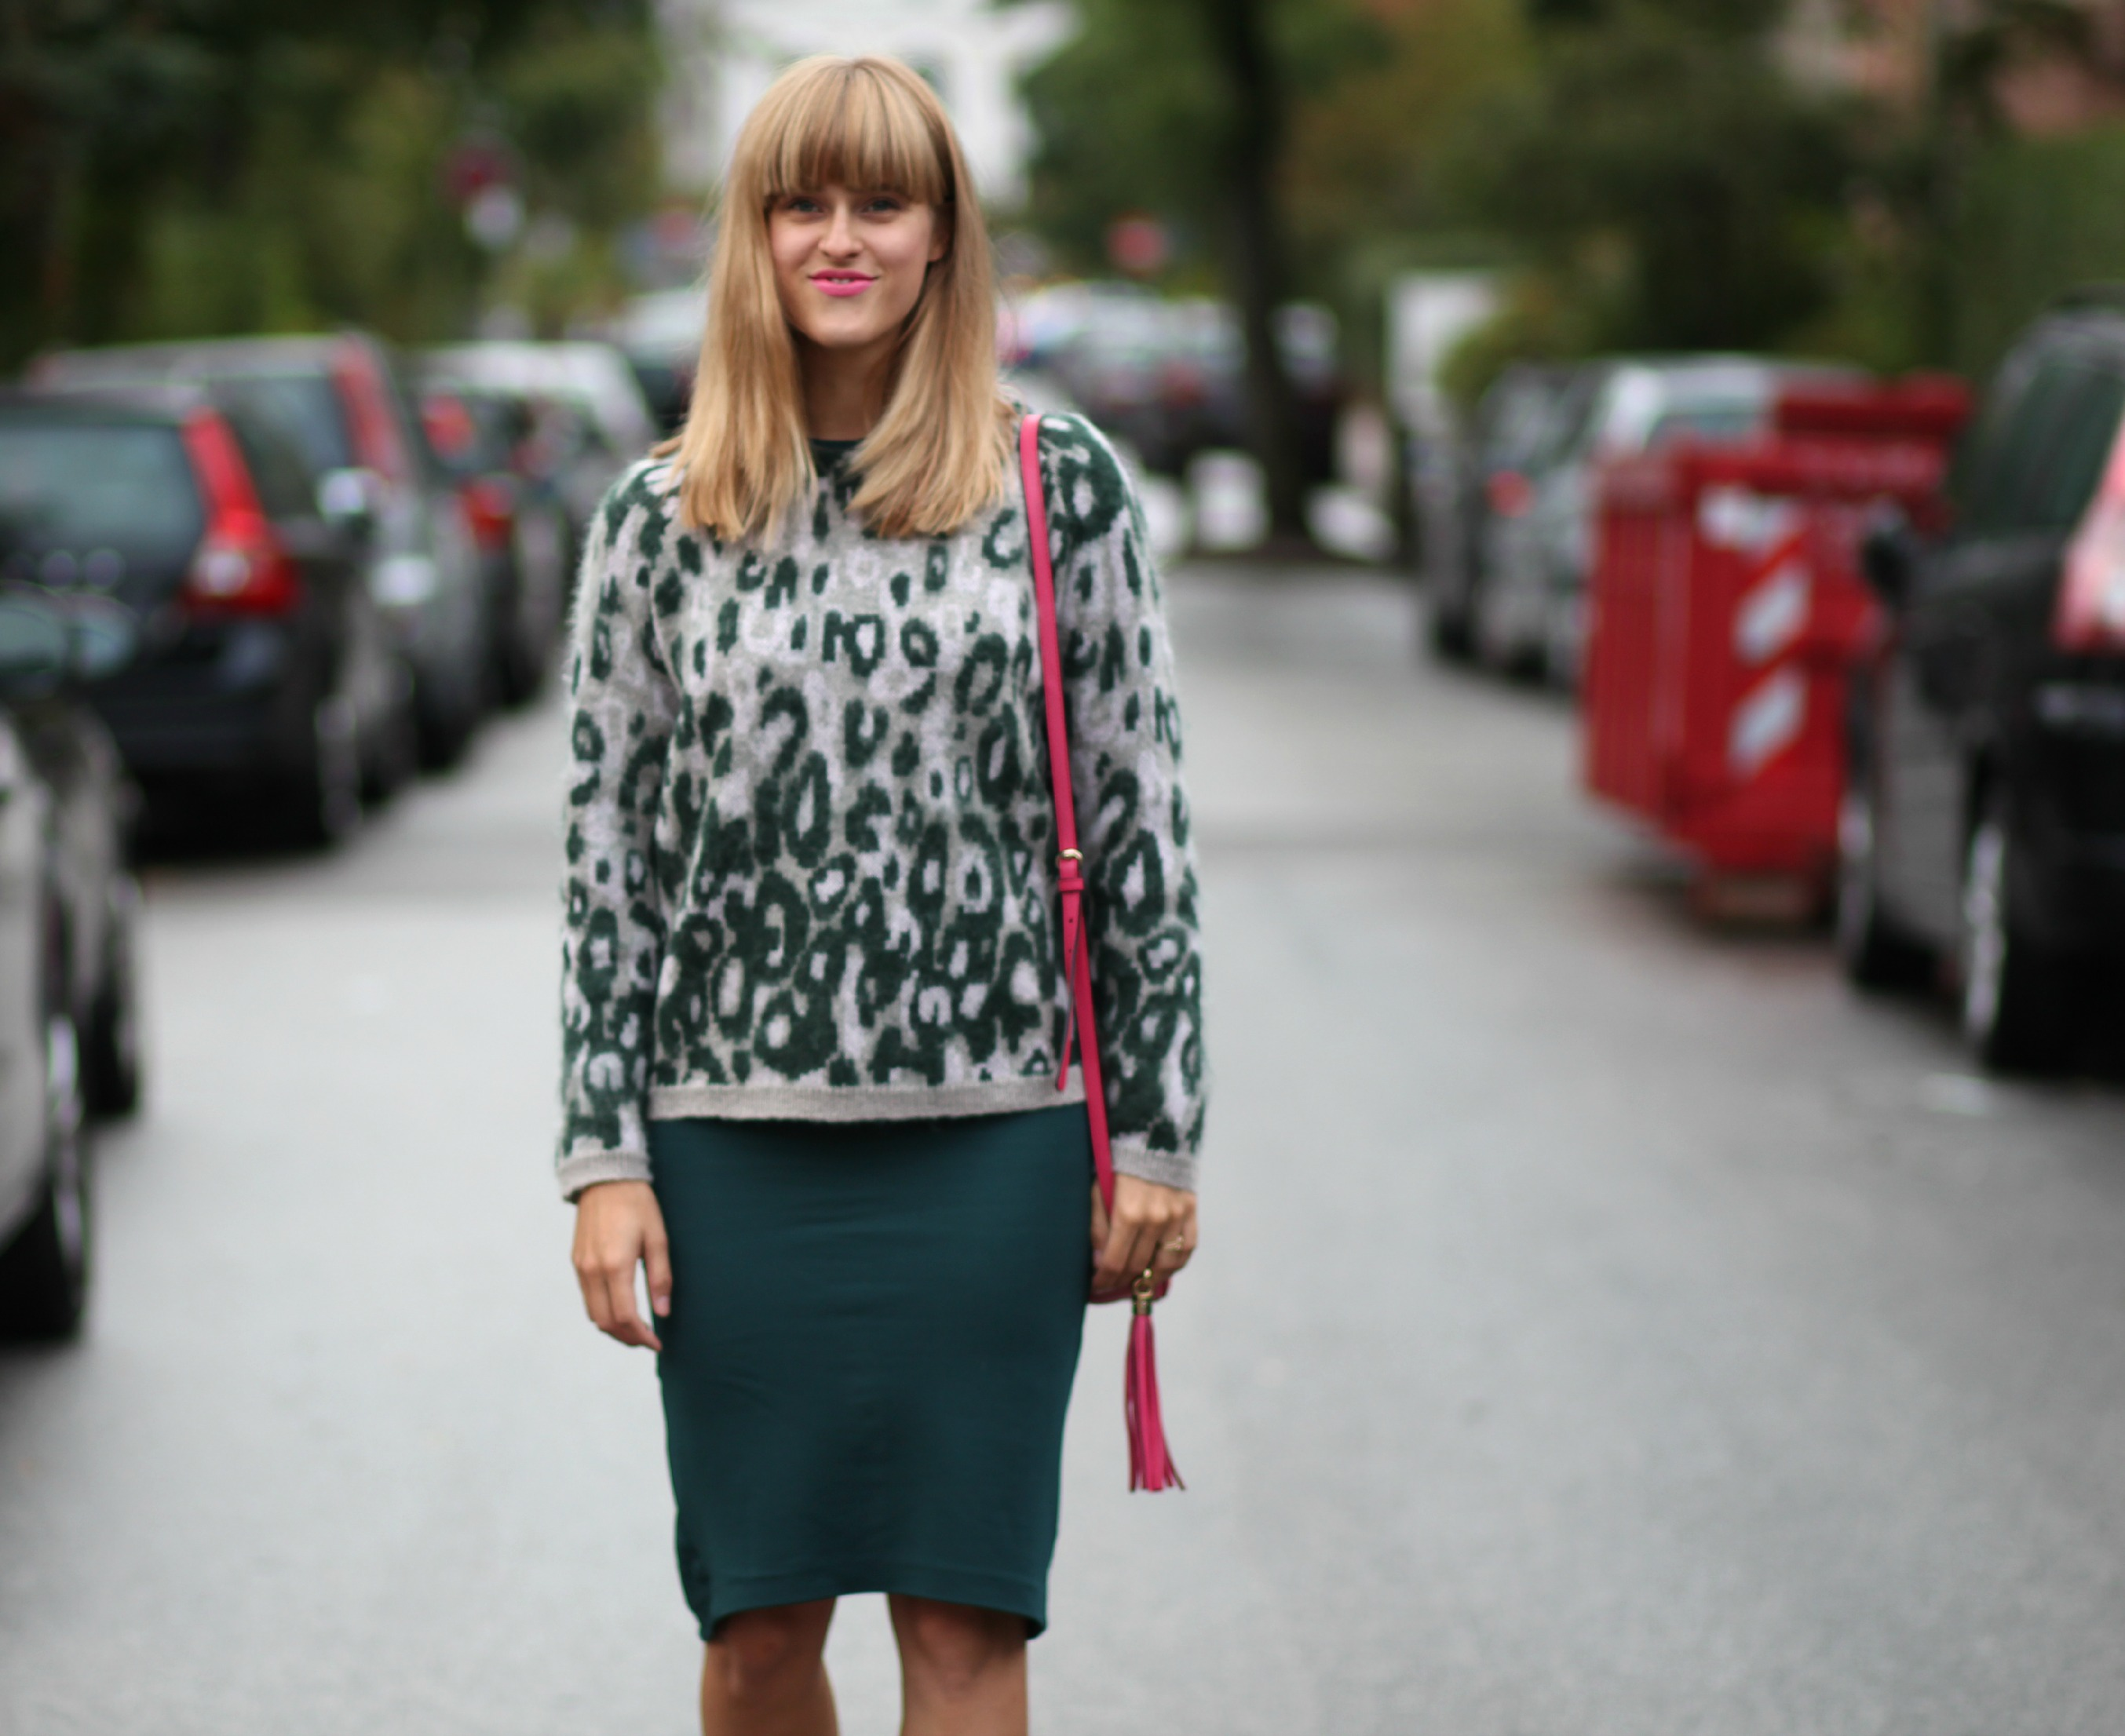 Designers remix, leo knit, pink gucci soho disco, rockpaperdresses, scandinavian blogger, ootd